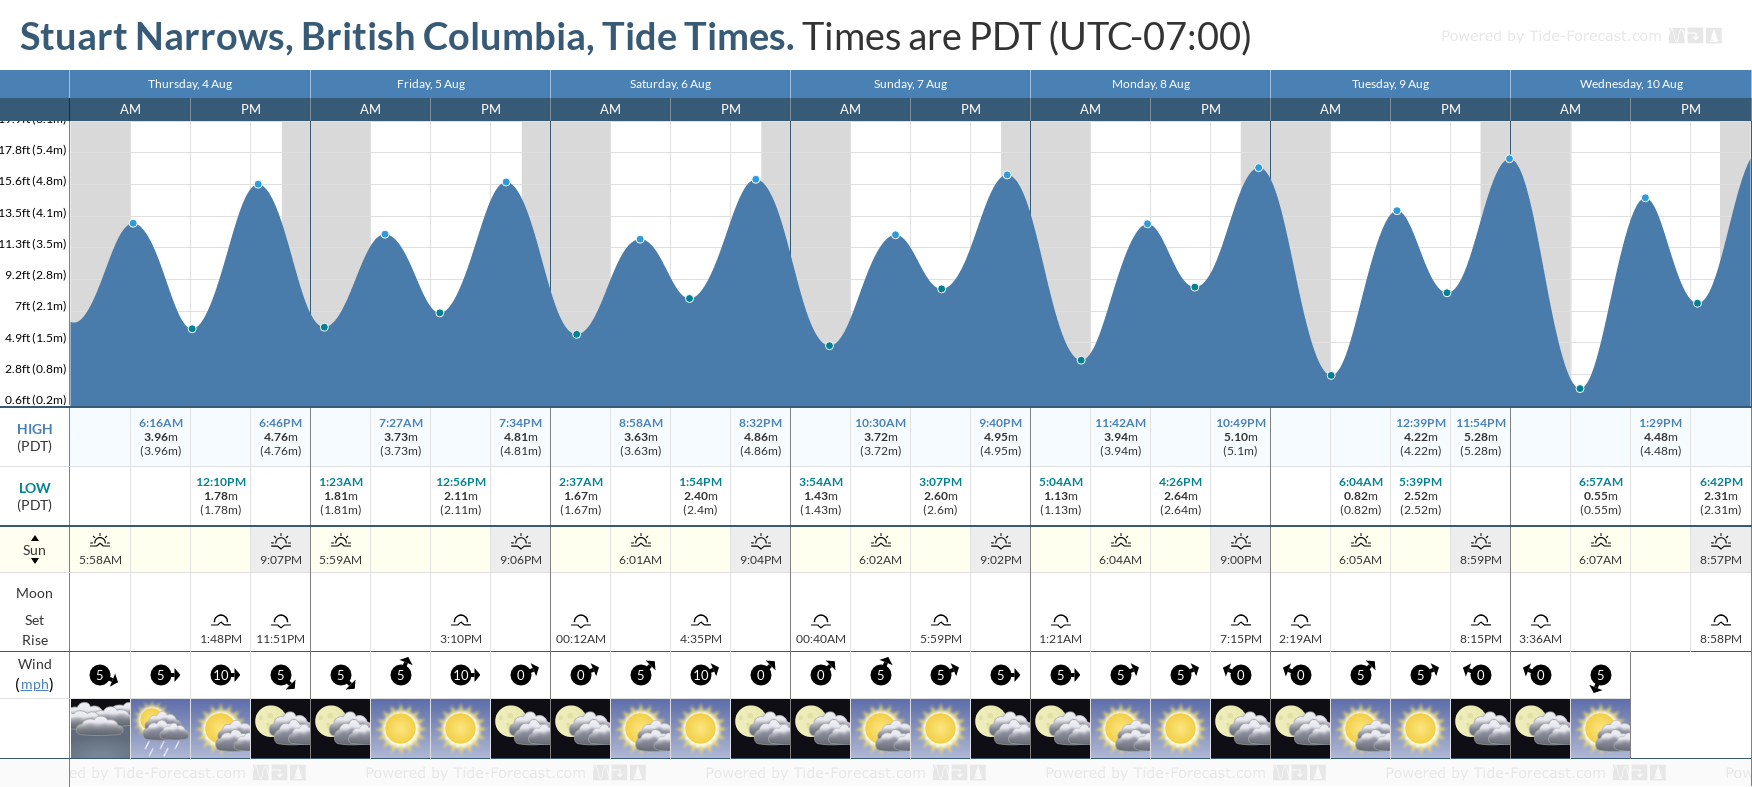 Stuart Narrows, British Columbia Tide Chart including high and low tide tide times for the next 7 days